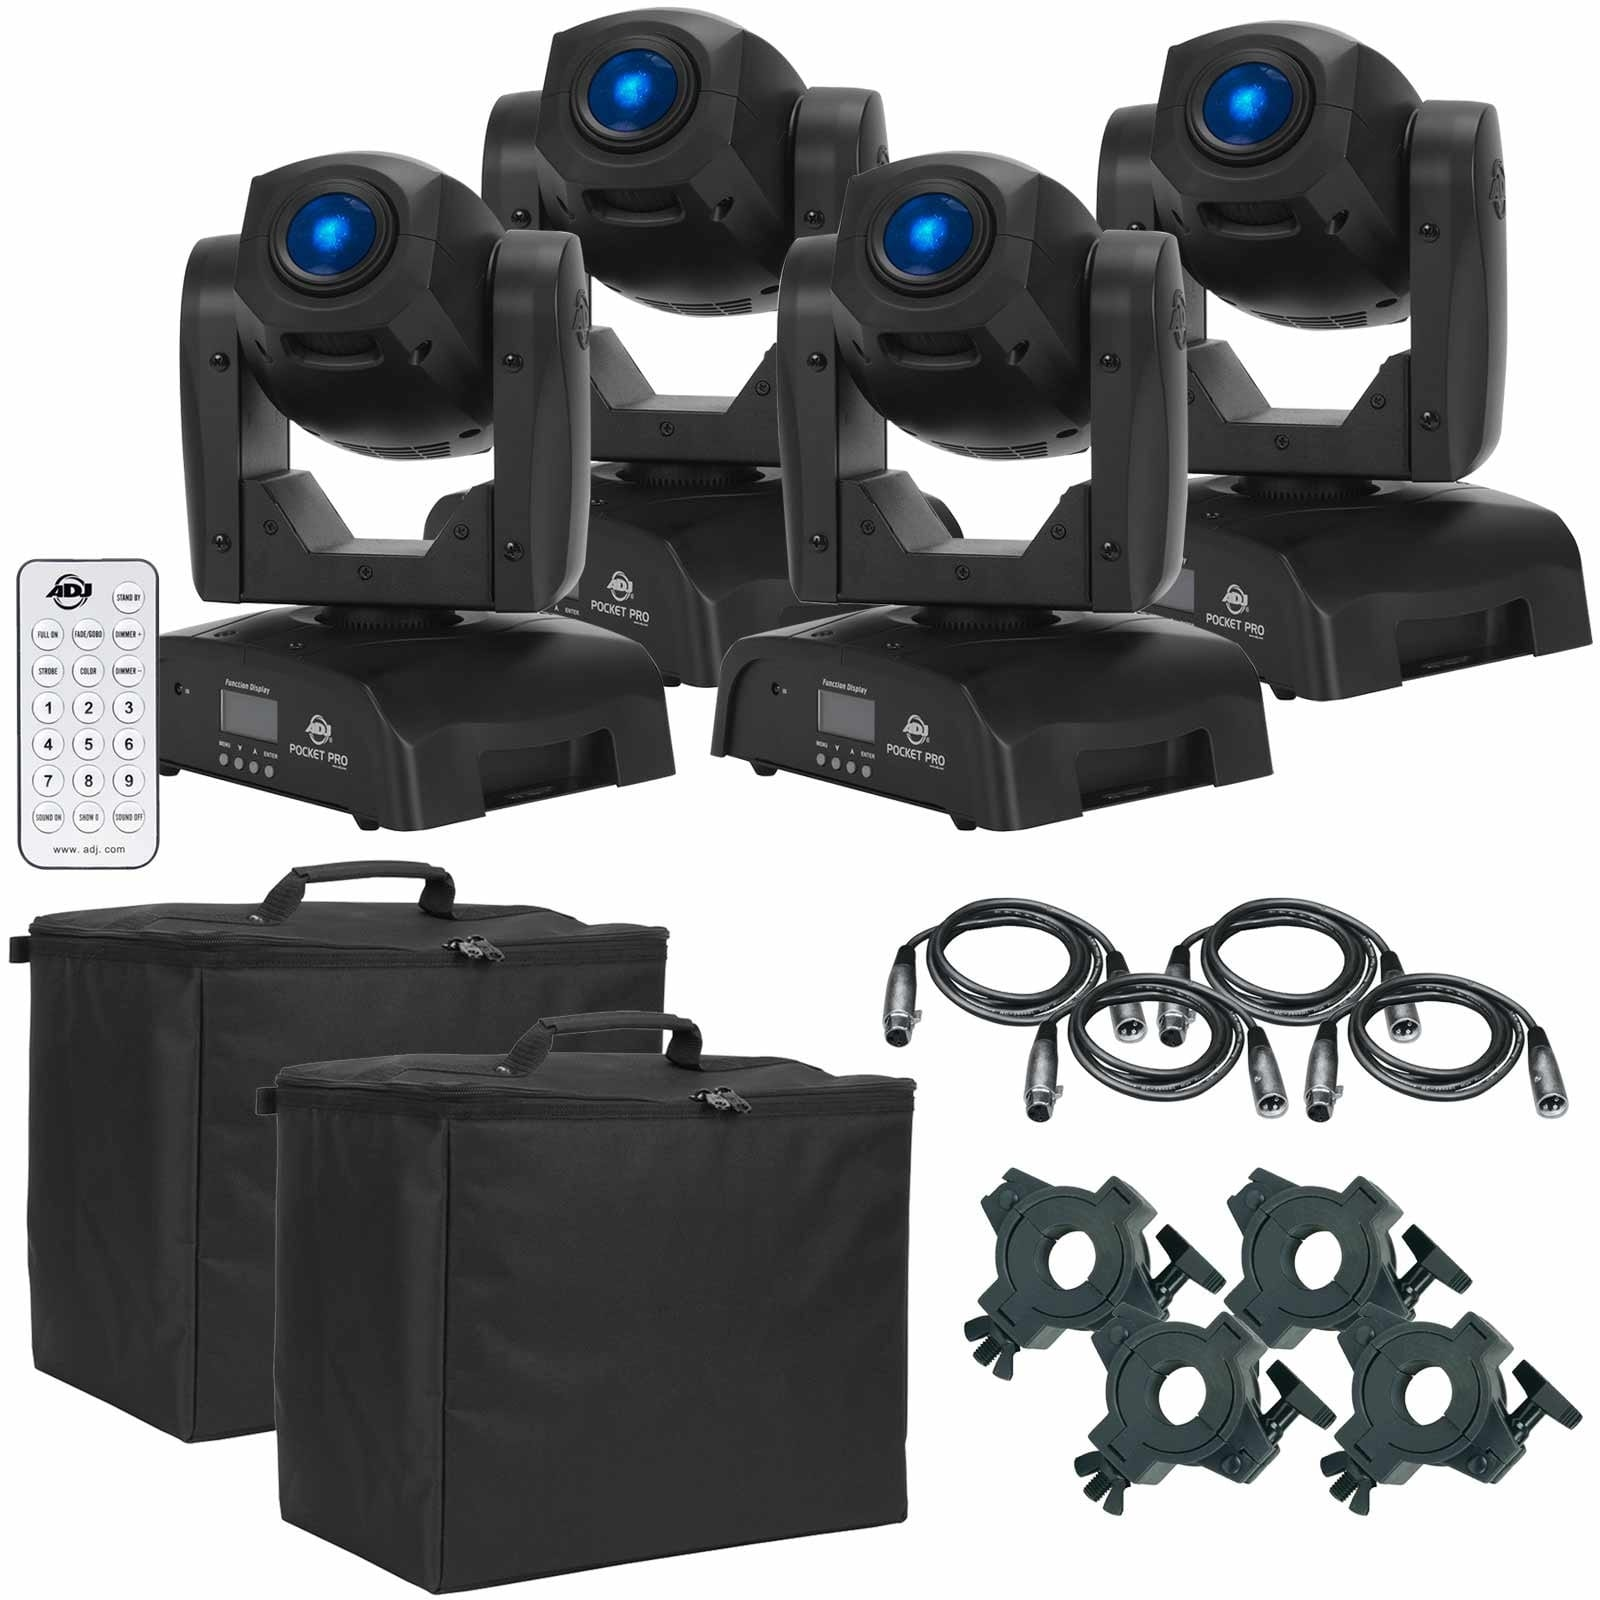 4-american-dj-pocket-pro-high-output-mini-moving-heads-with-uc-ir-universal-remote-control-package-0.jpg